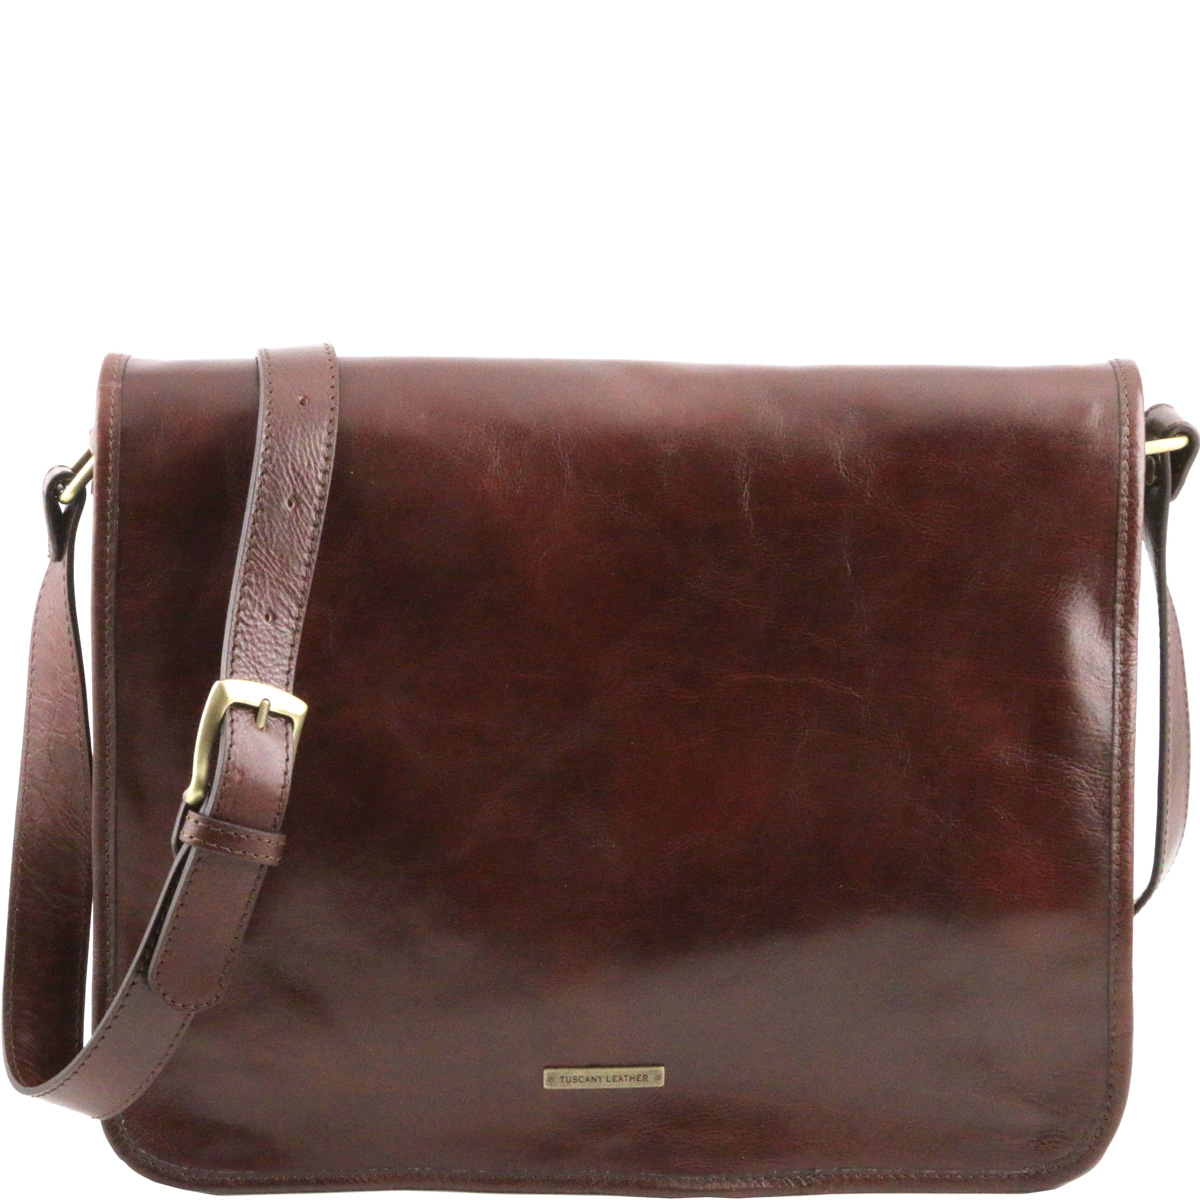 Tuscany Leather TL Messenger bag Large size